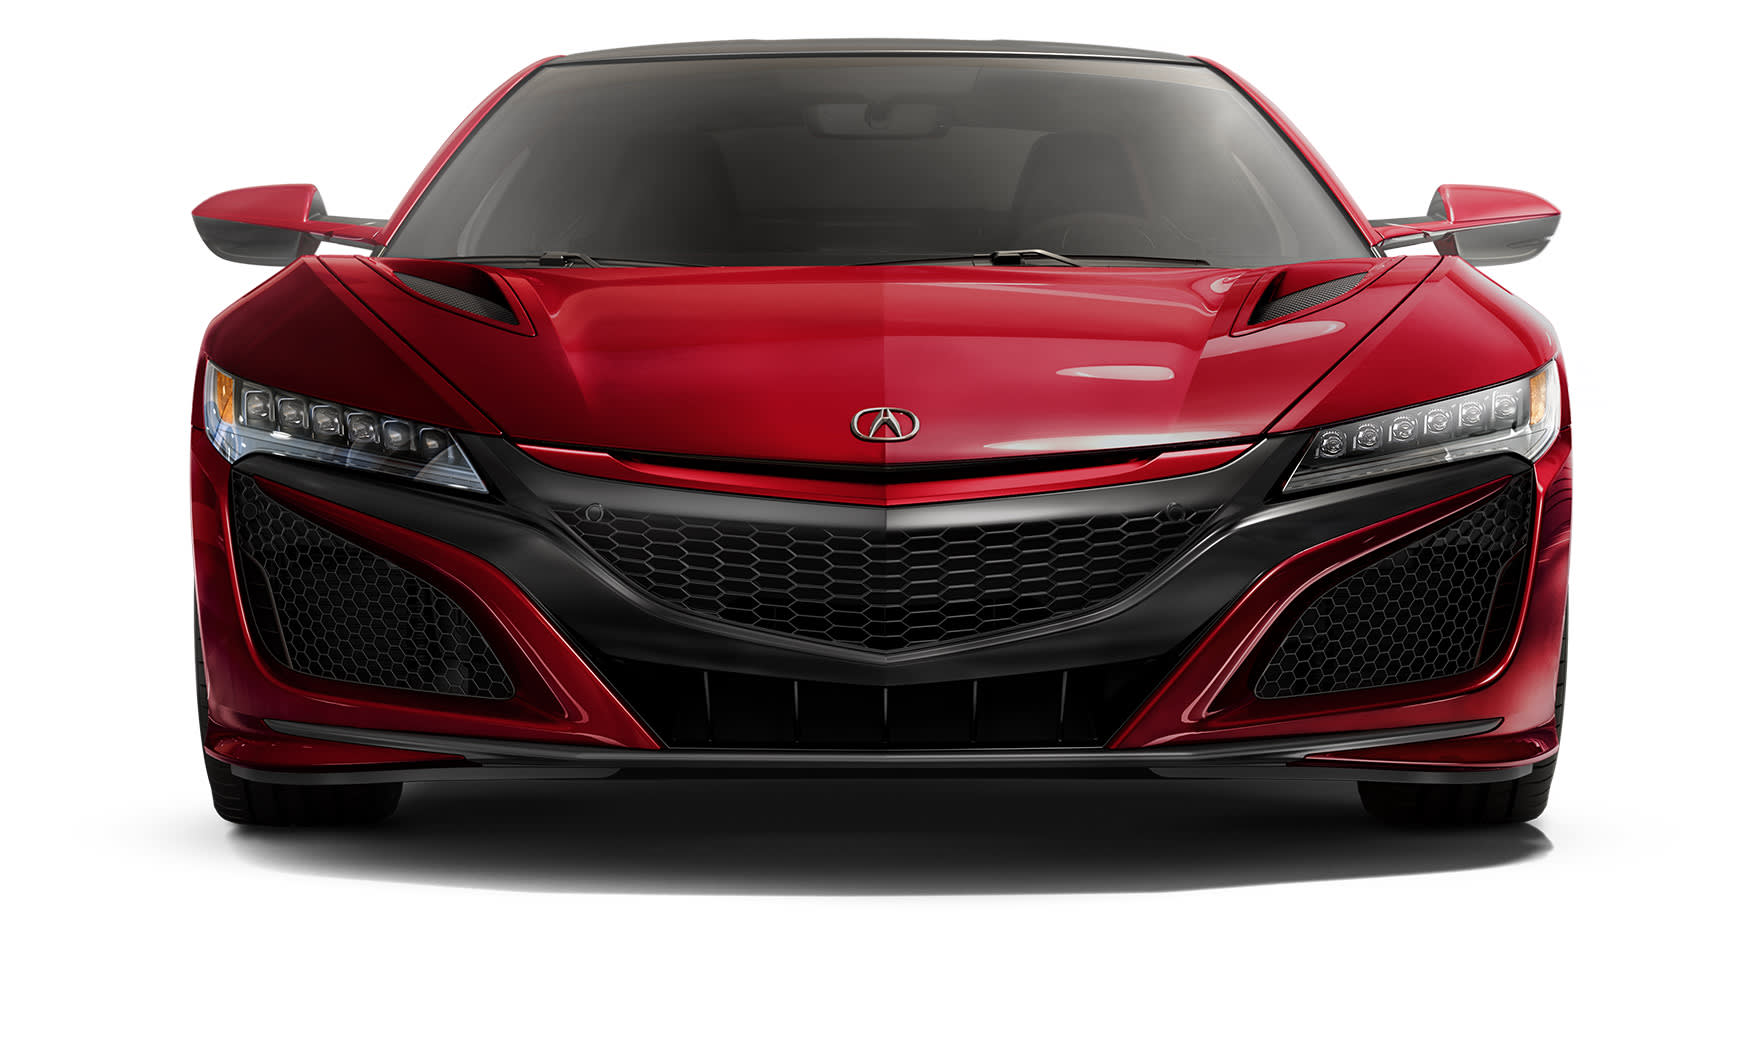 The 2019 Acura NSX is a supercar built for everyday auto nerds